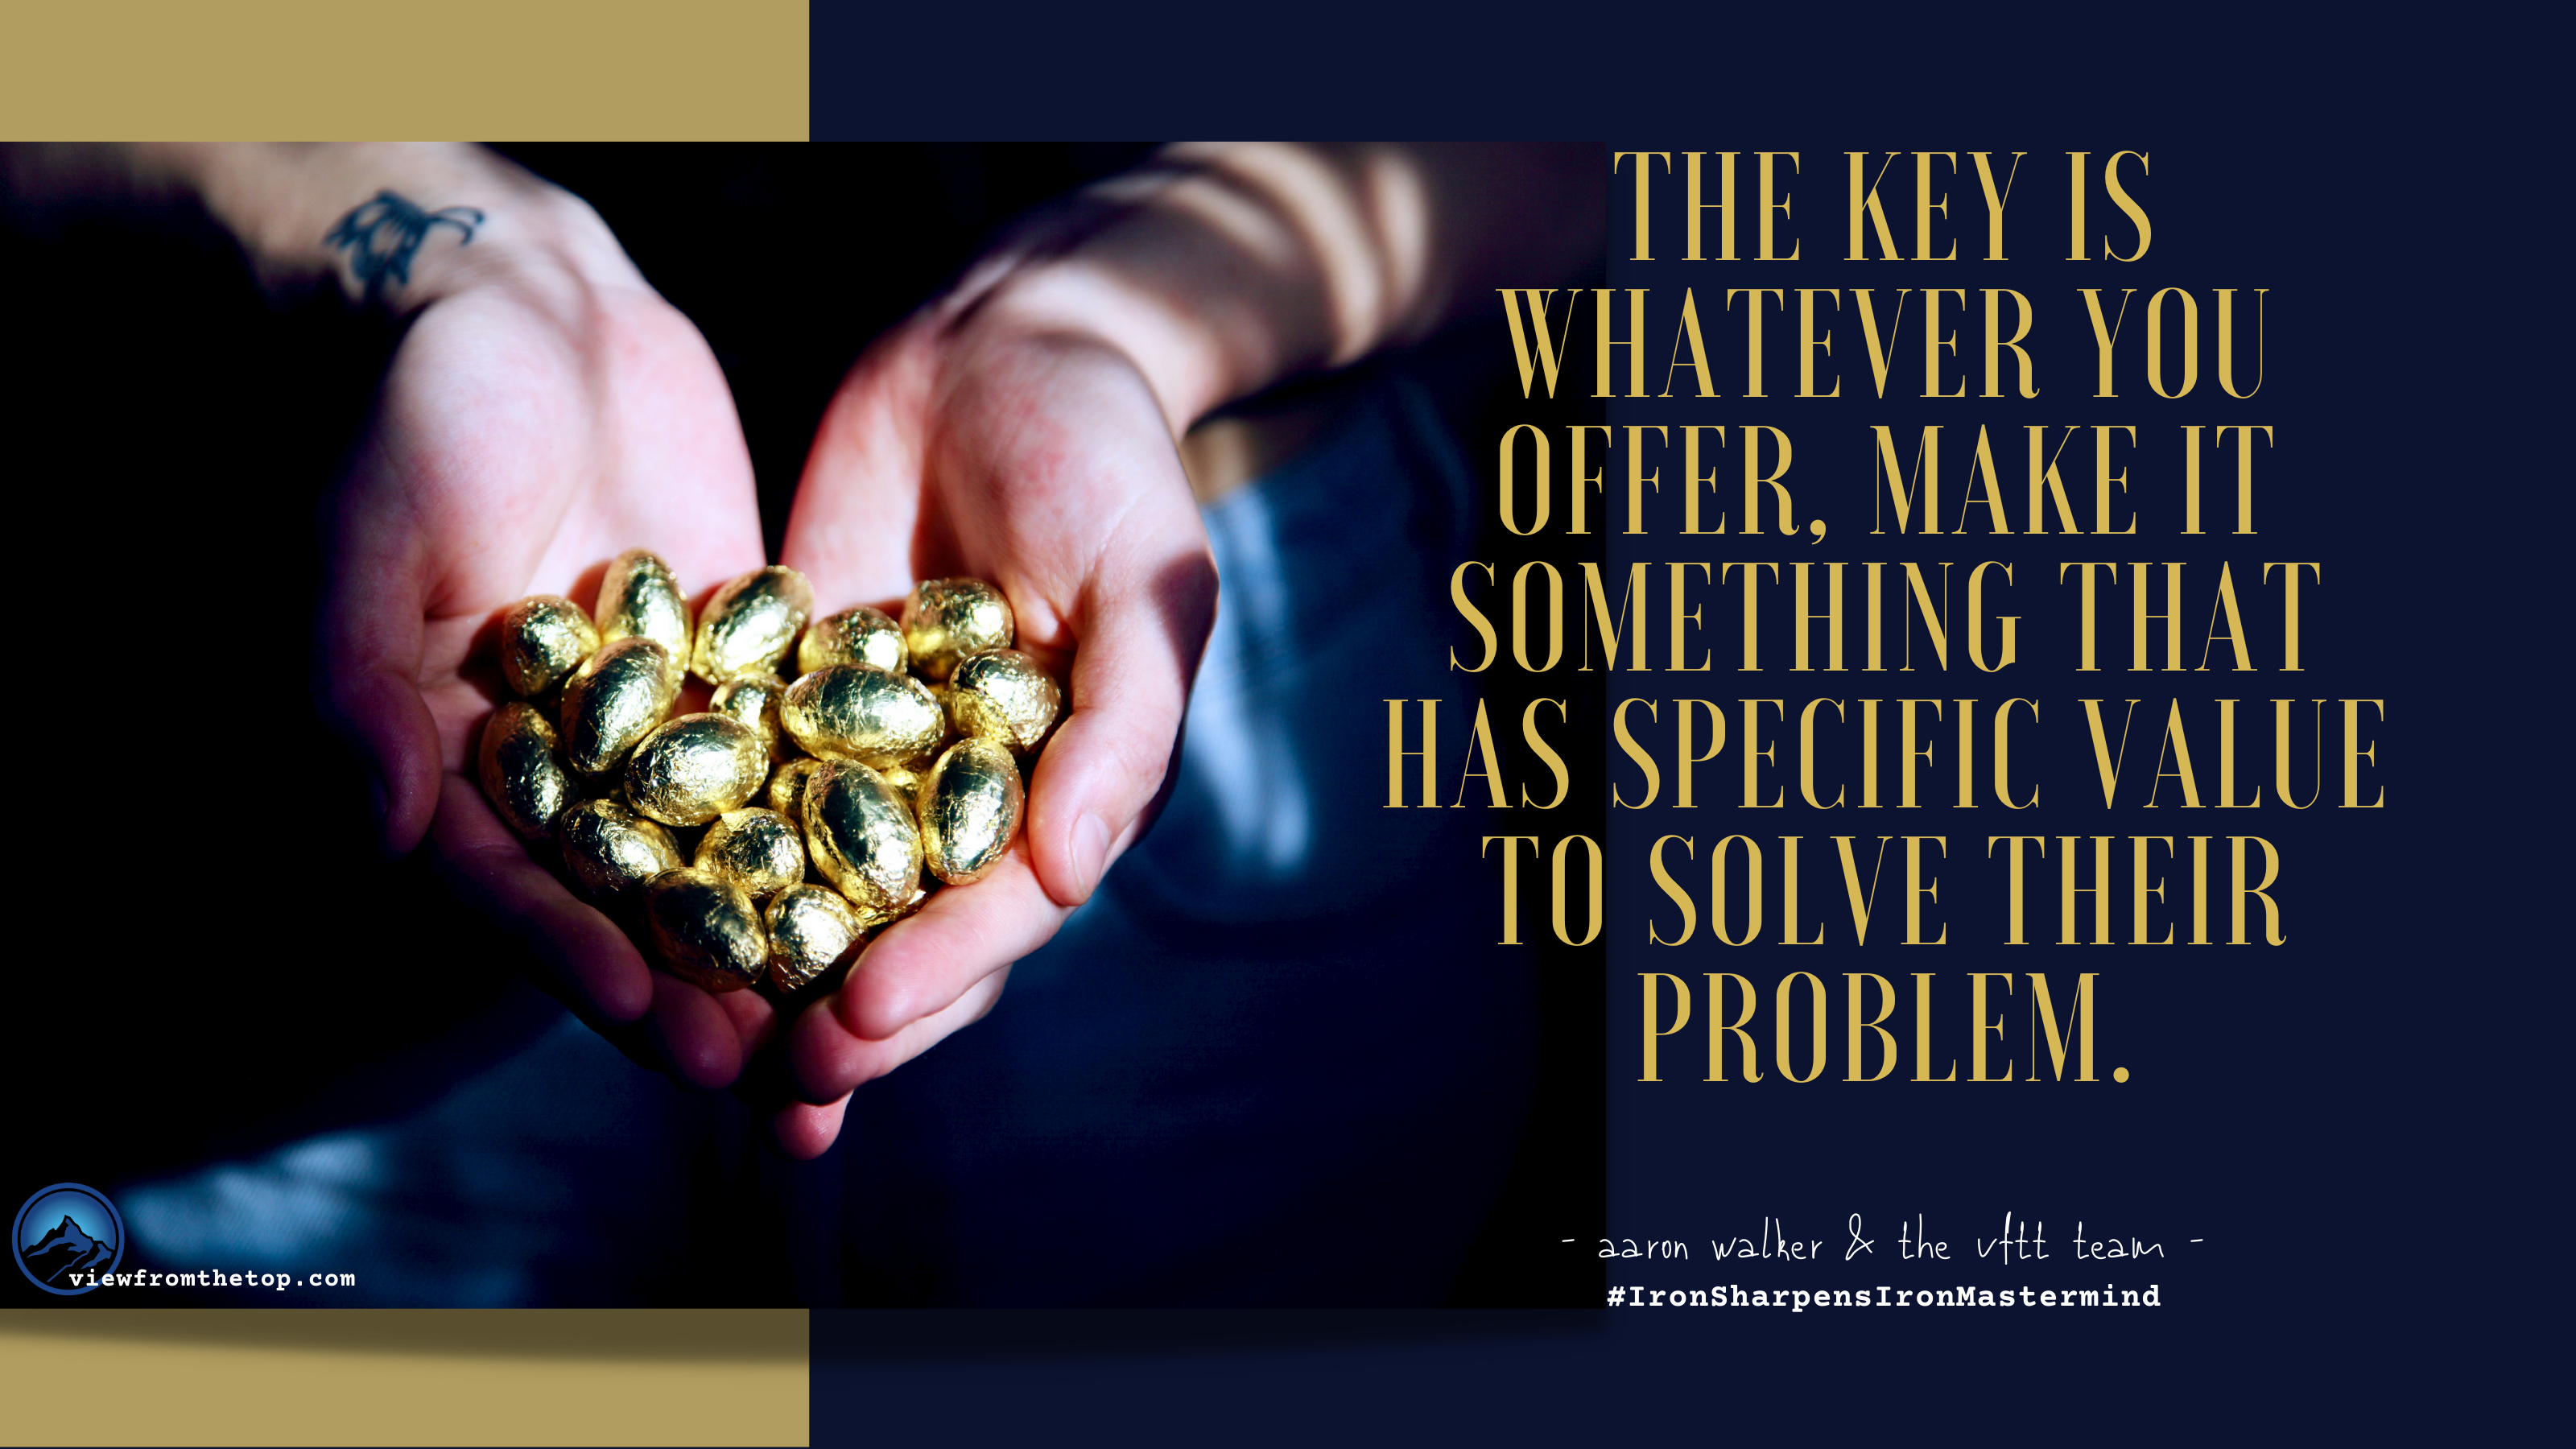 The key is whatever you offer, make it something that has specific value to solve their problem. (1)